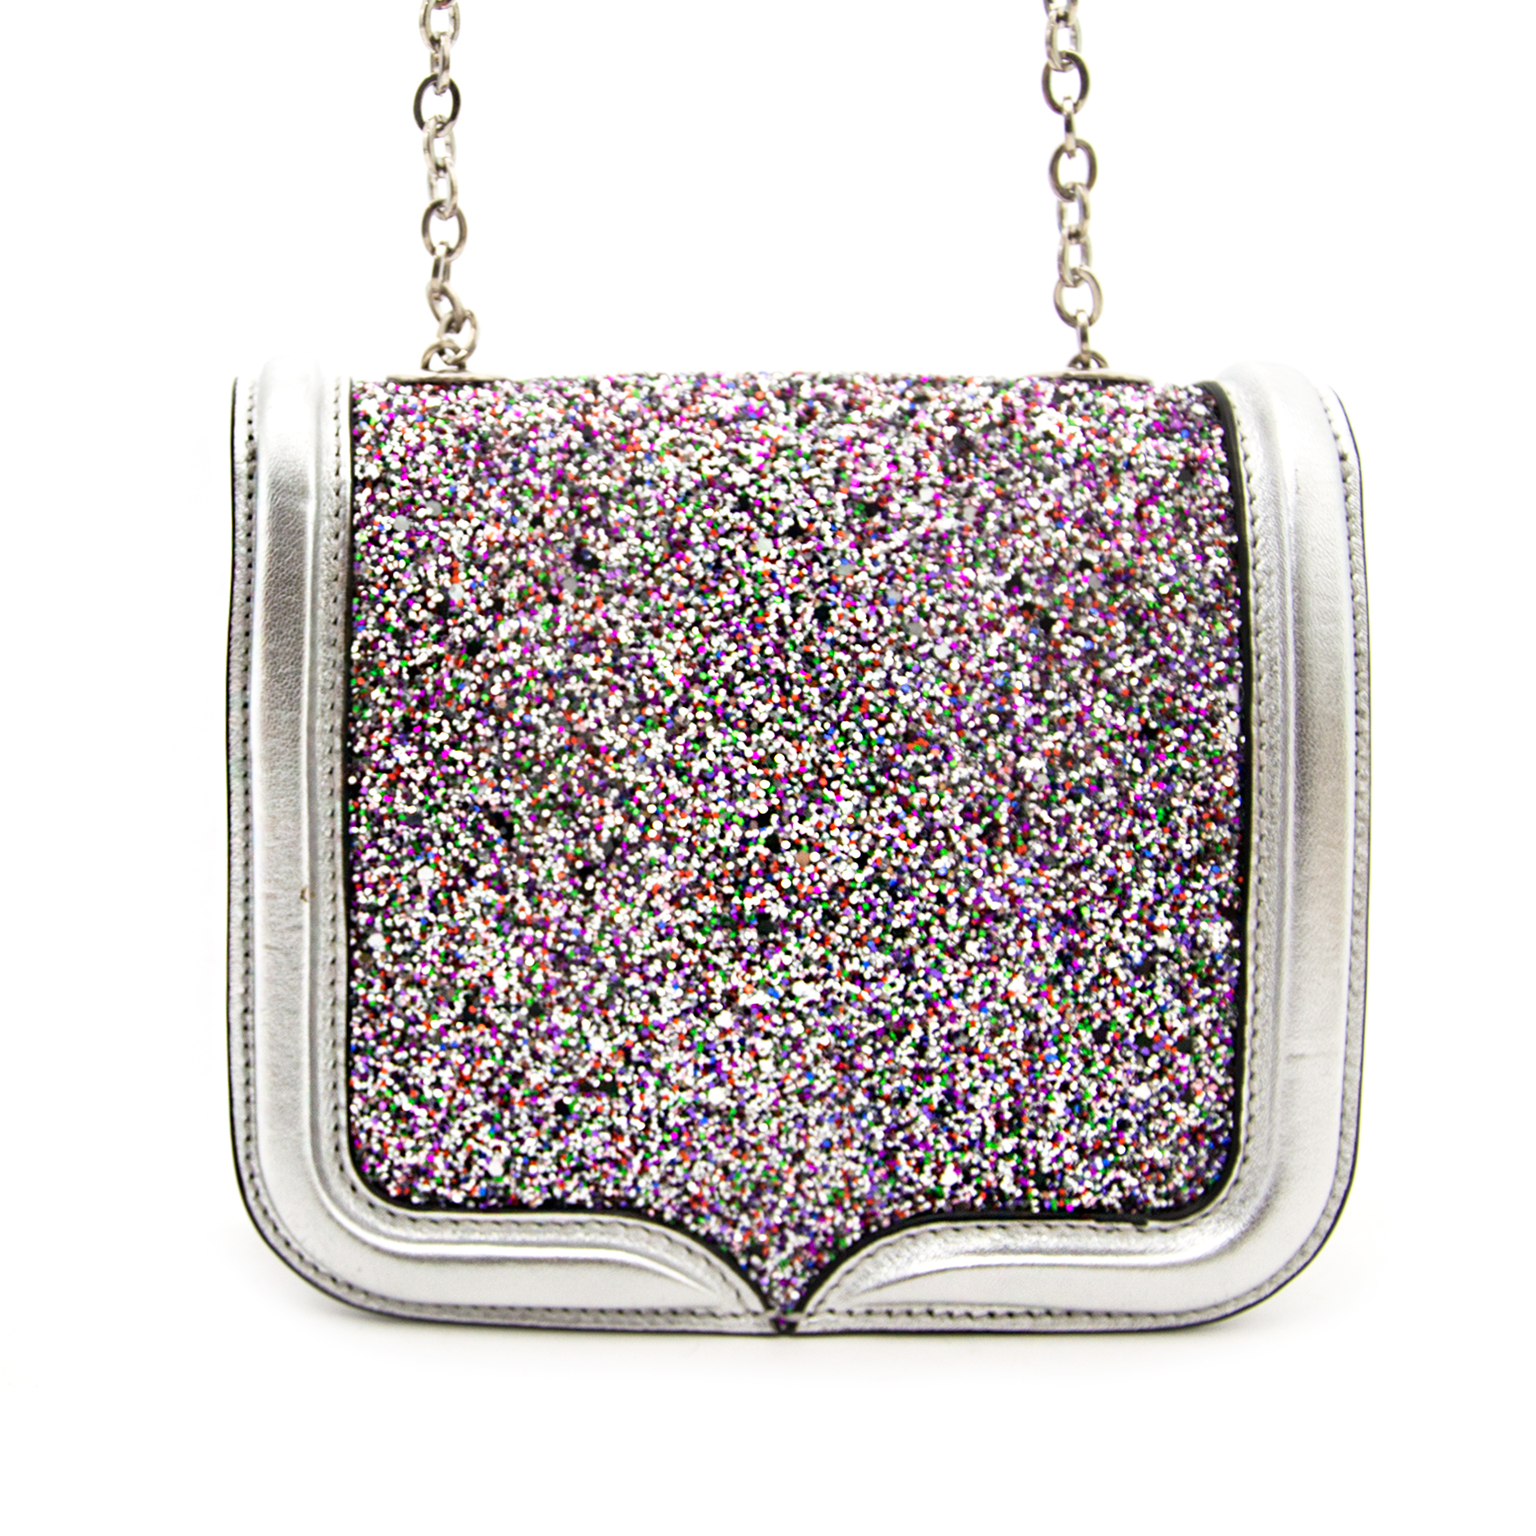 Shop safe online aan de beste prijs Alexander McQueen Multi Color Glitter Mini Heroine Bag